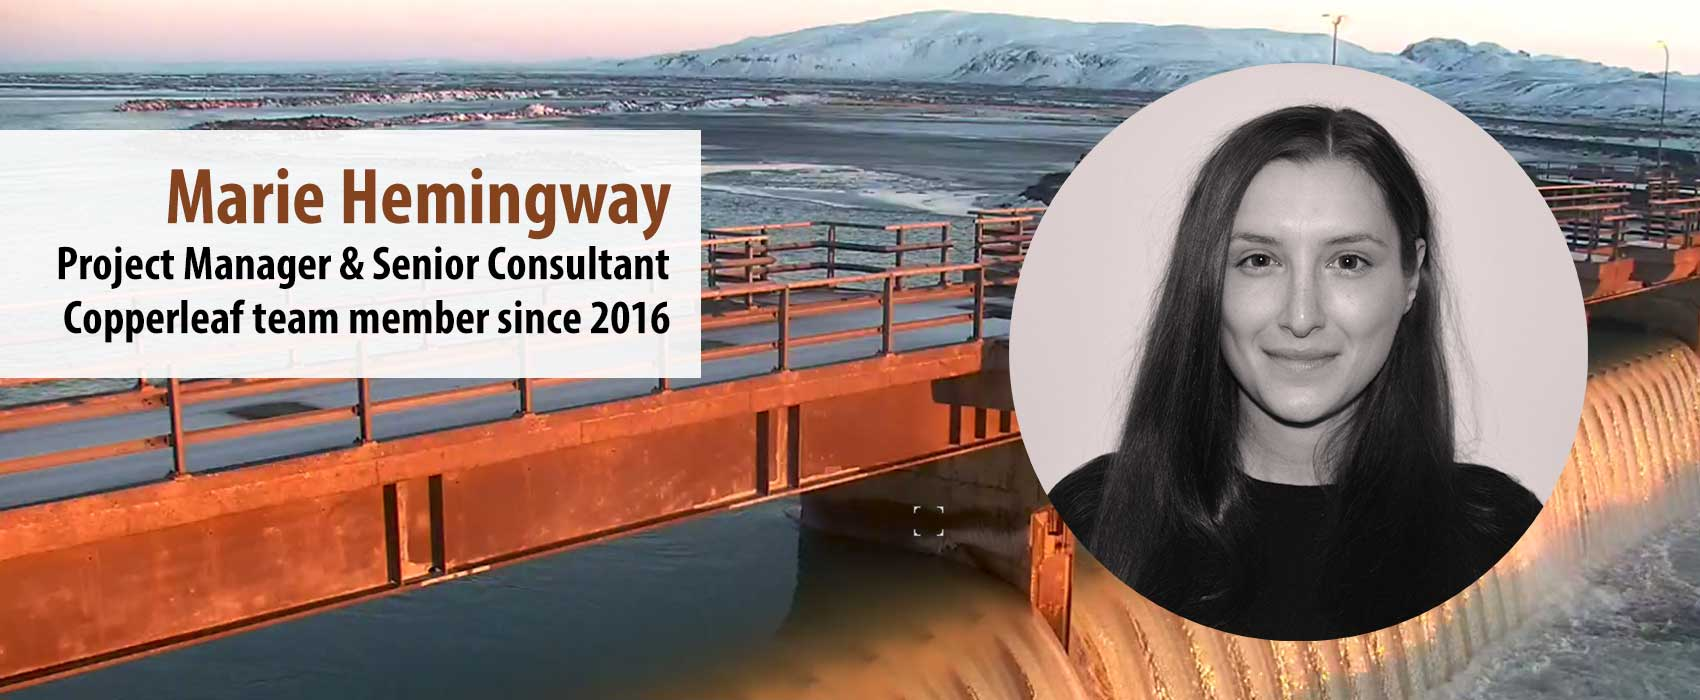 Image for Employee Feature: Q&A with Marie Hemingway, Project Manager, Team Europe